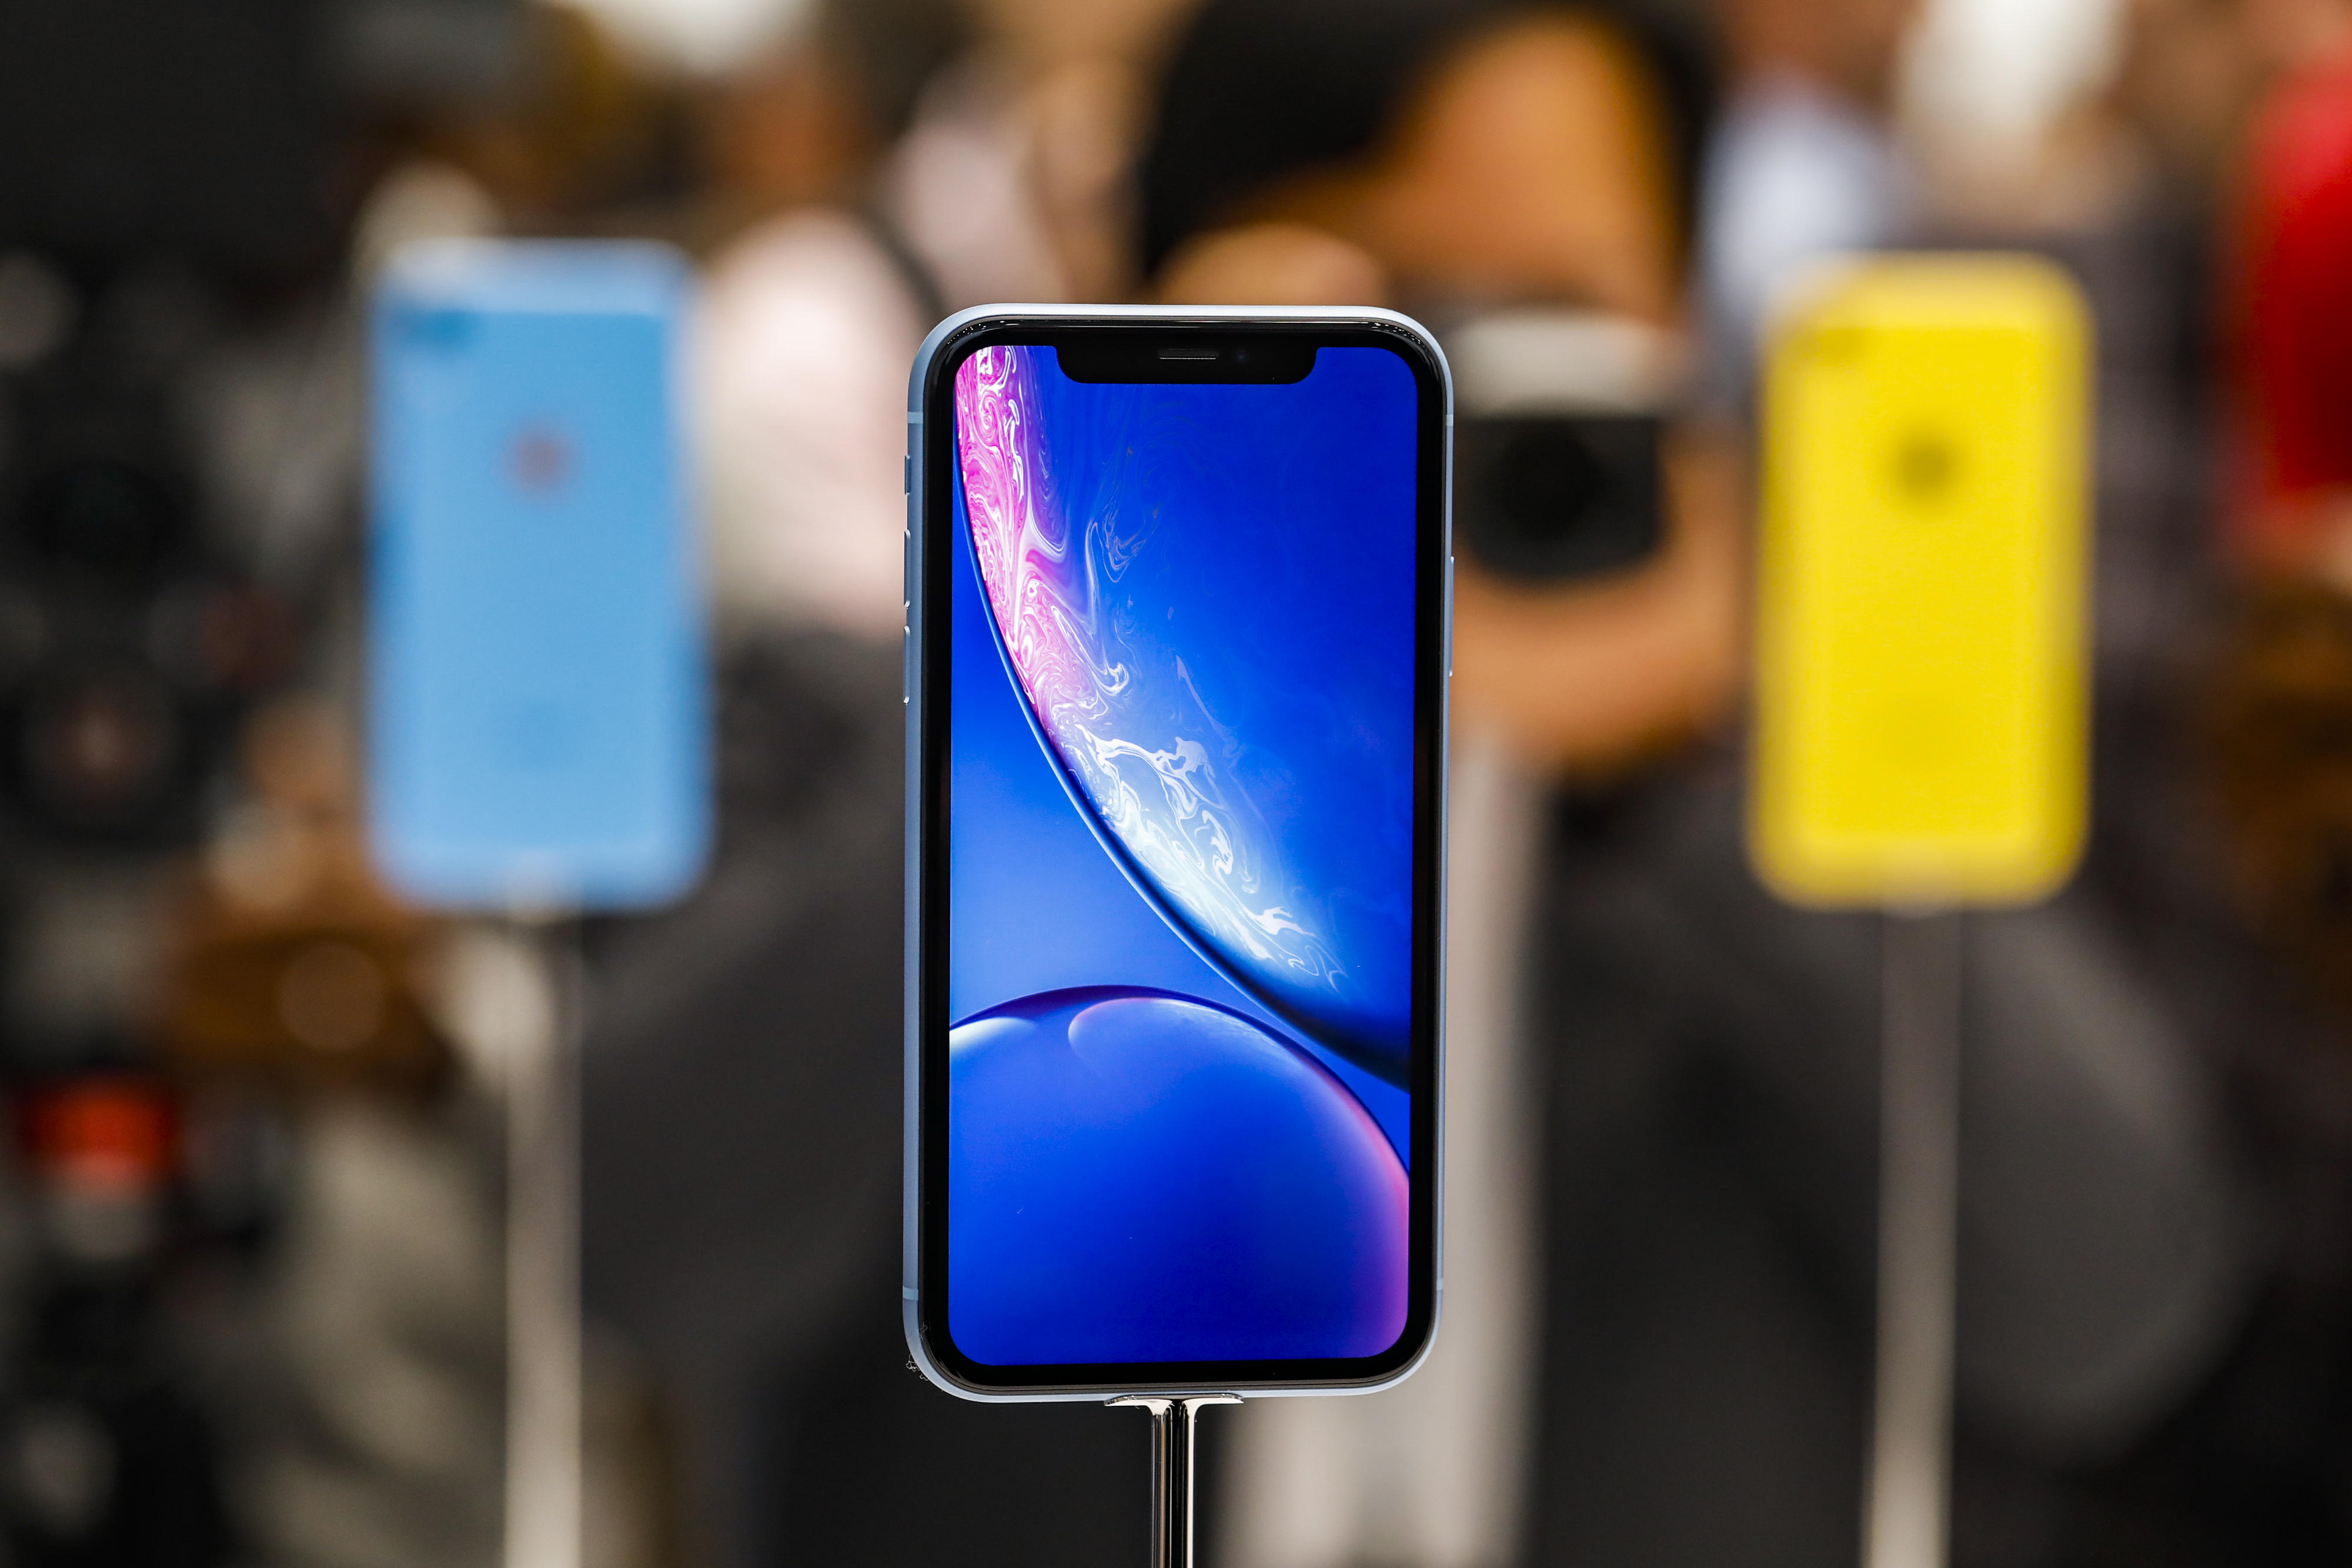 apple-event-091218-iphone-xr-0476